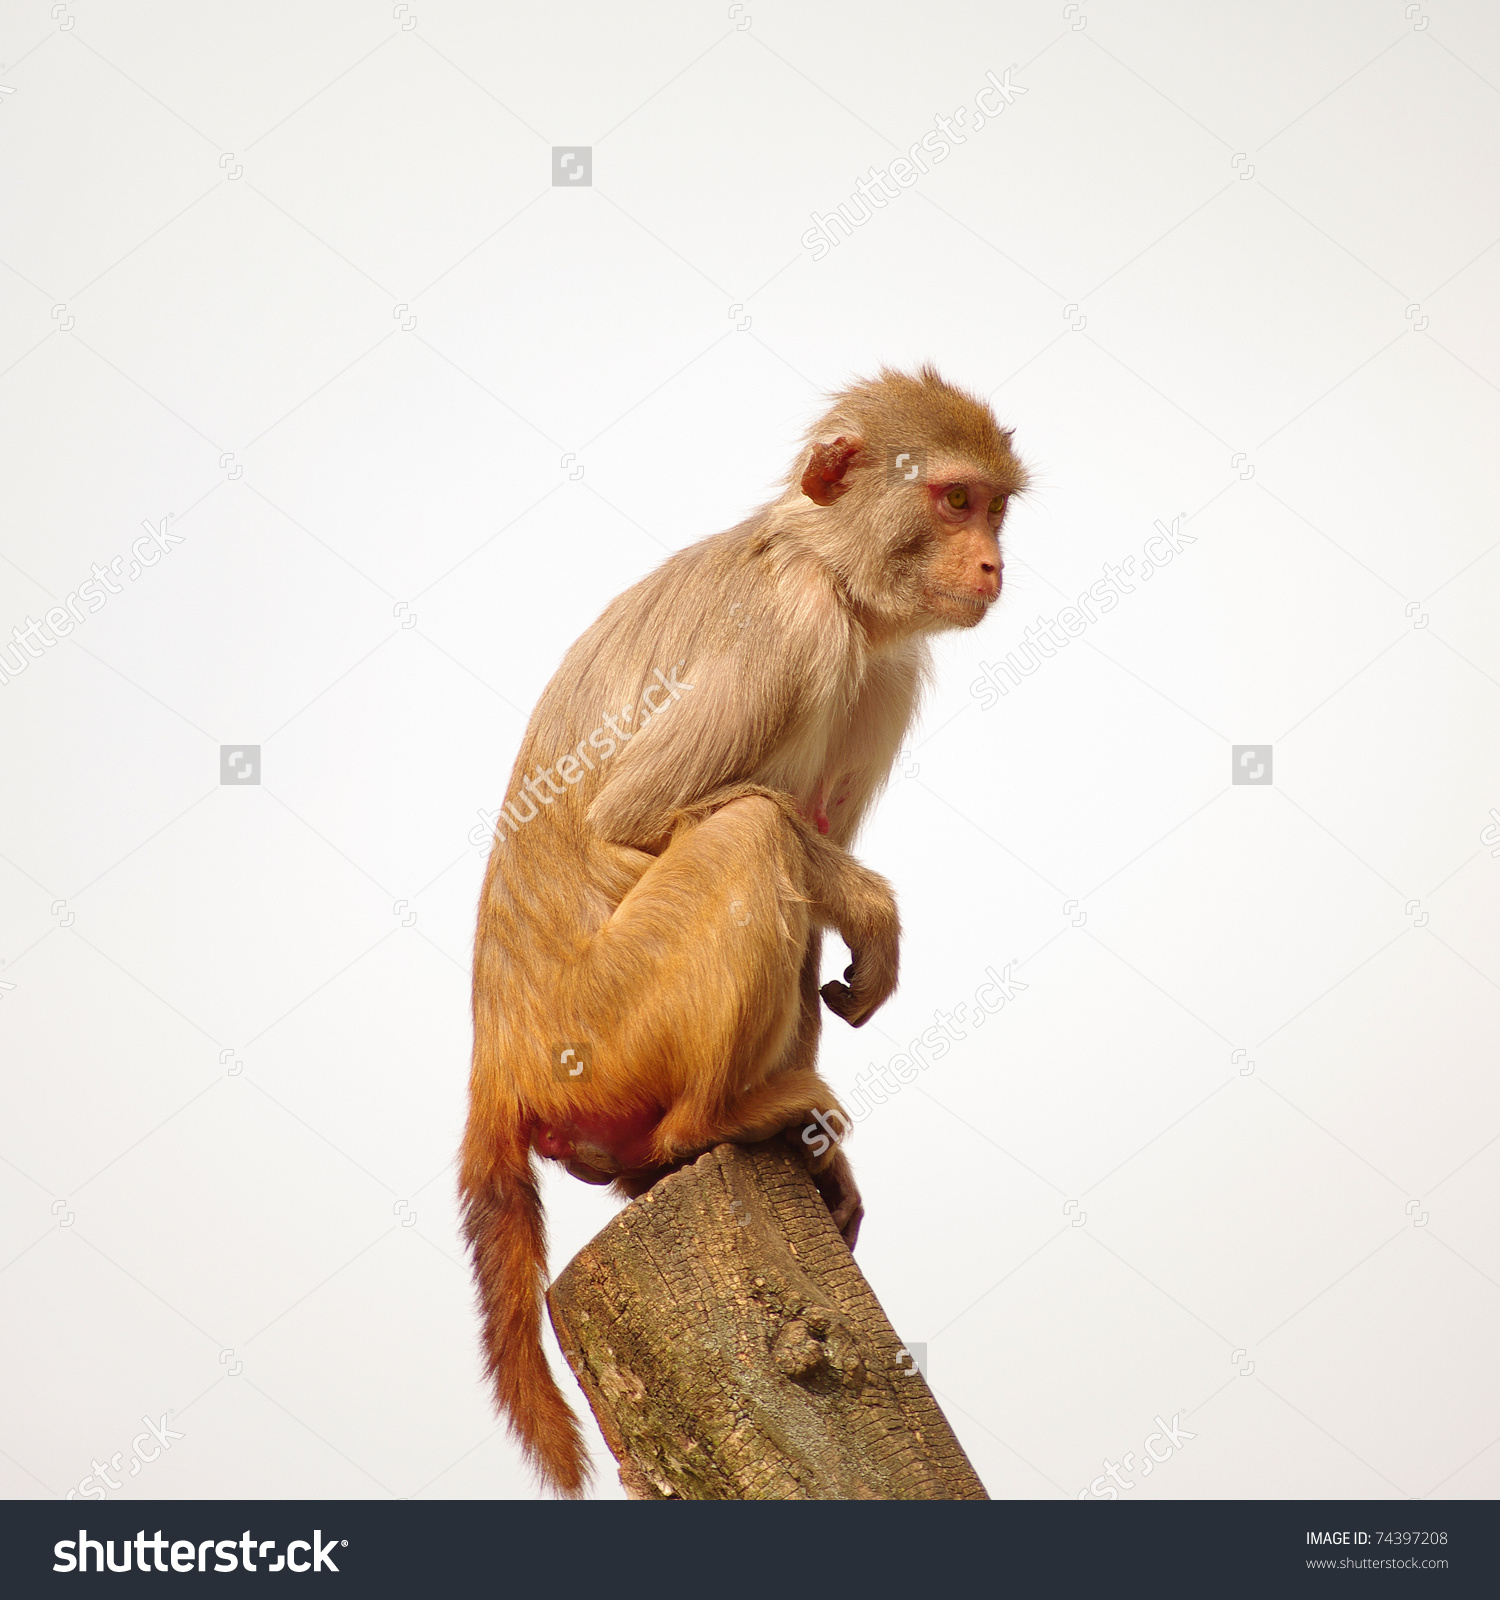 Rhesus Monkey Heidelbergs Zoo Germany Stock Photo 74397208.